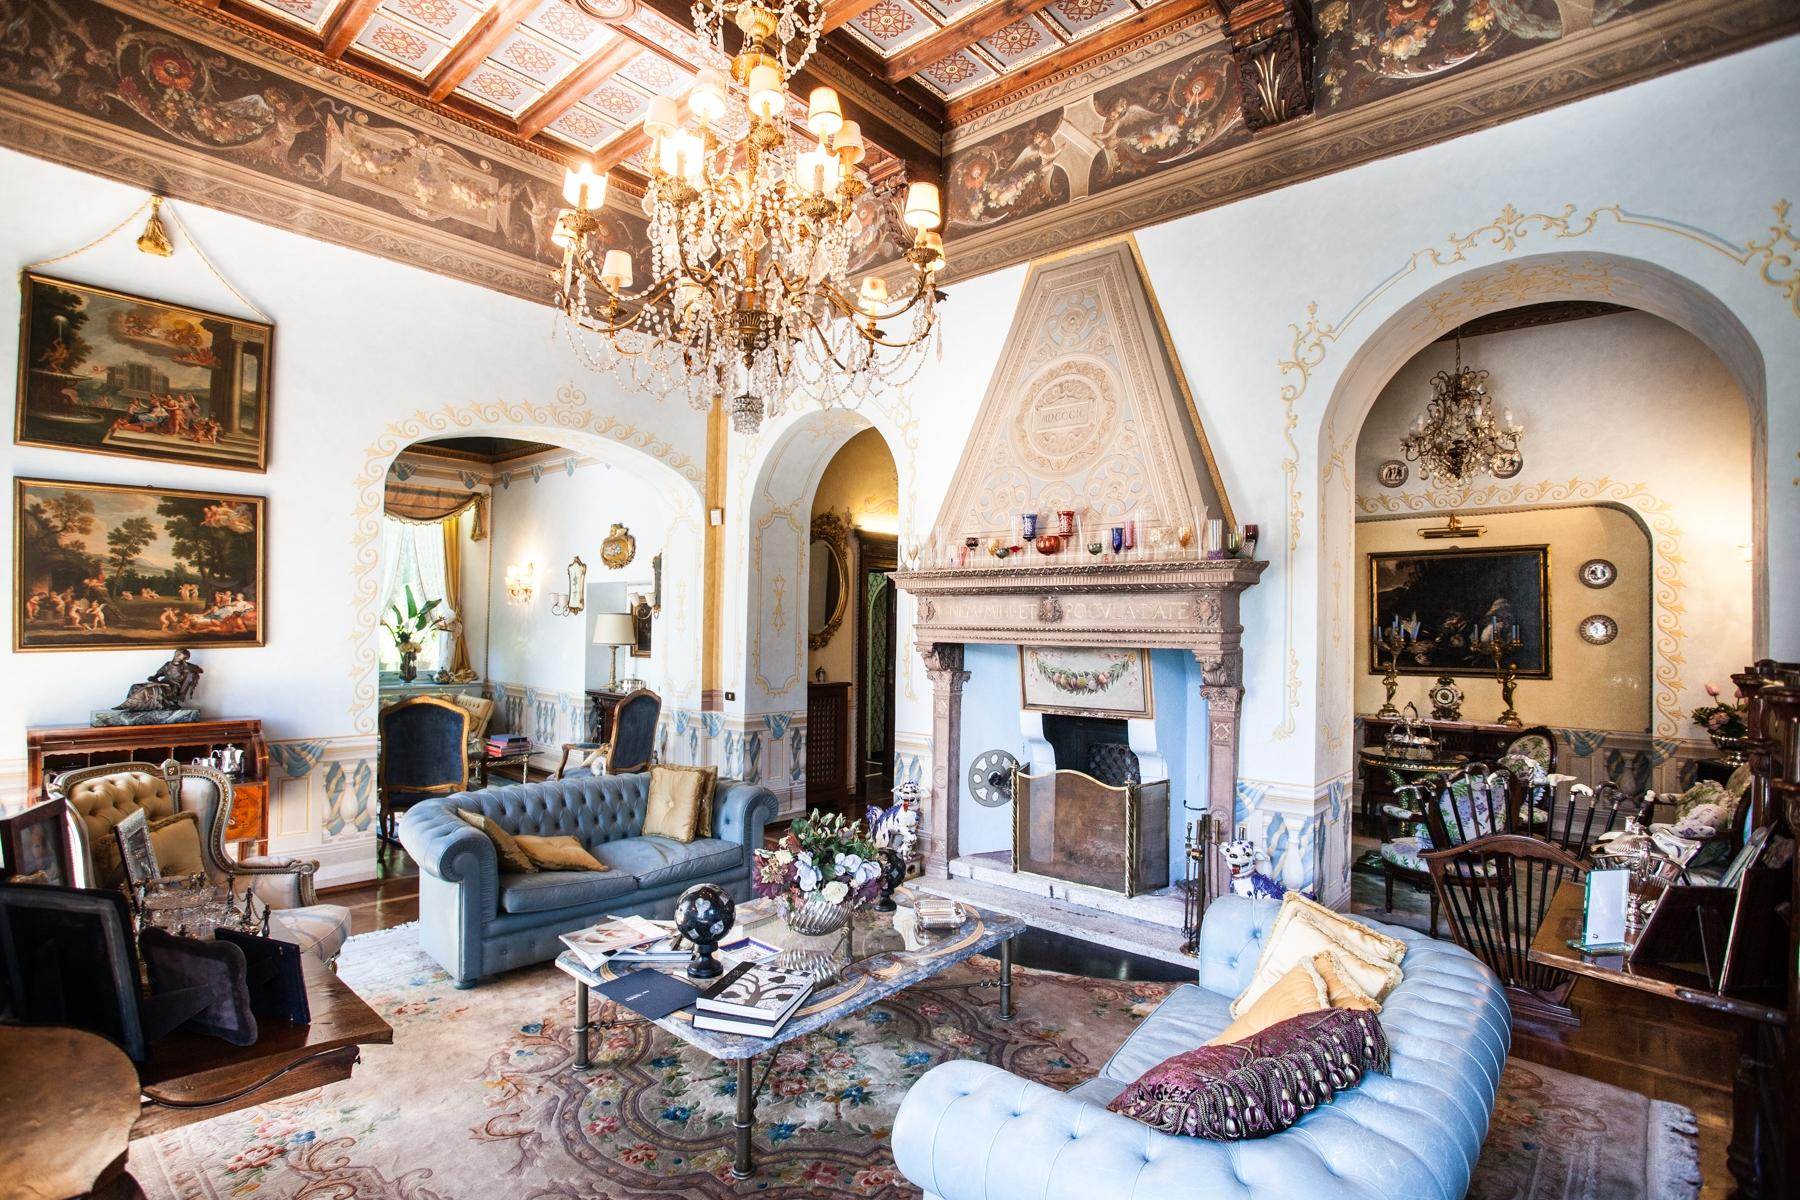 Charming historic villa with private park - 10